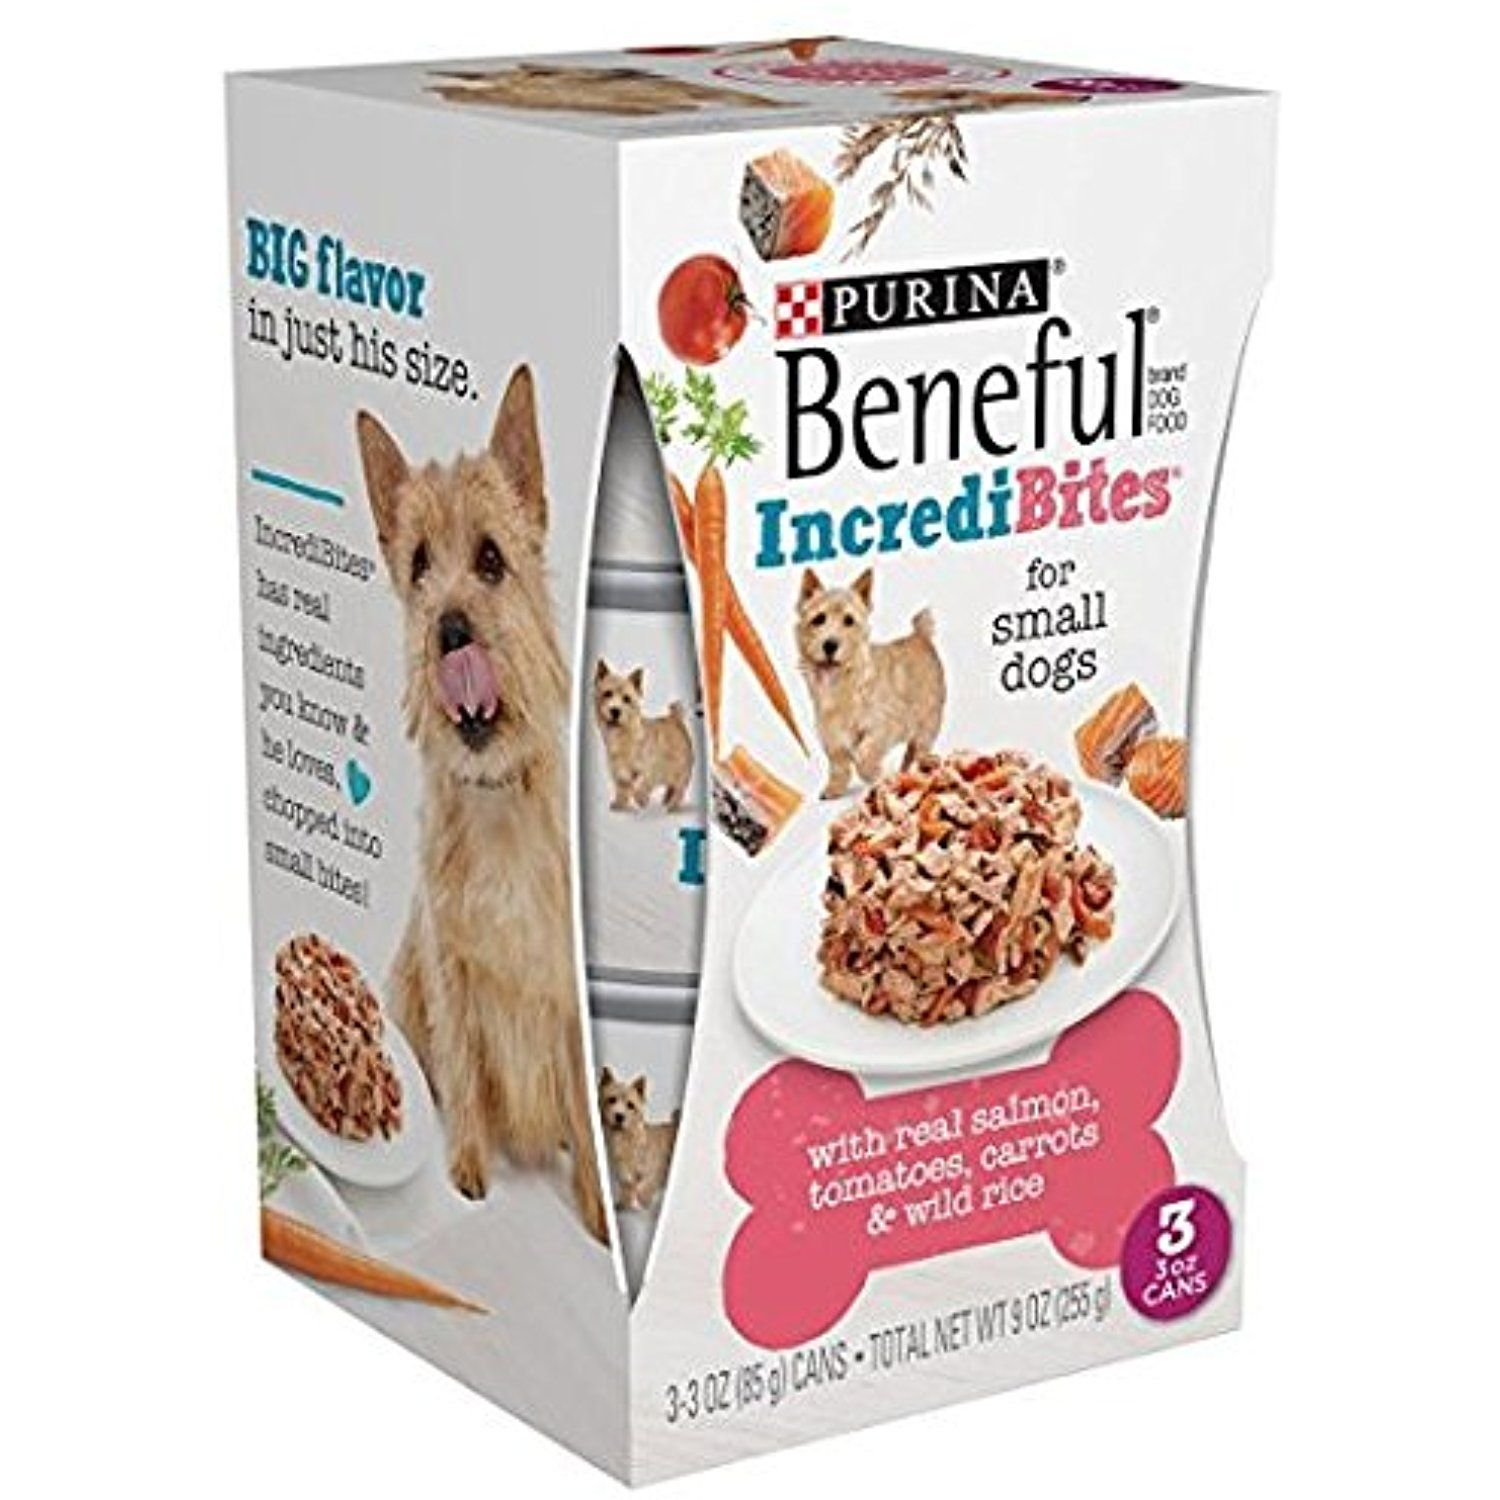 beneful wet dog food for puppies